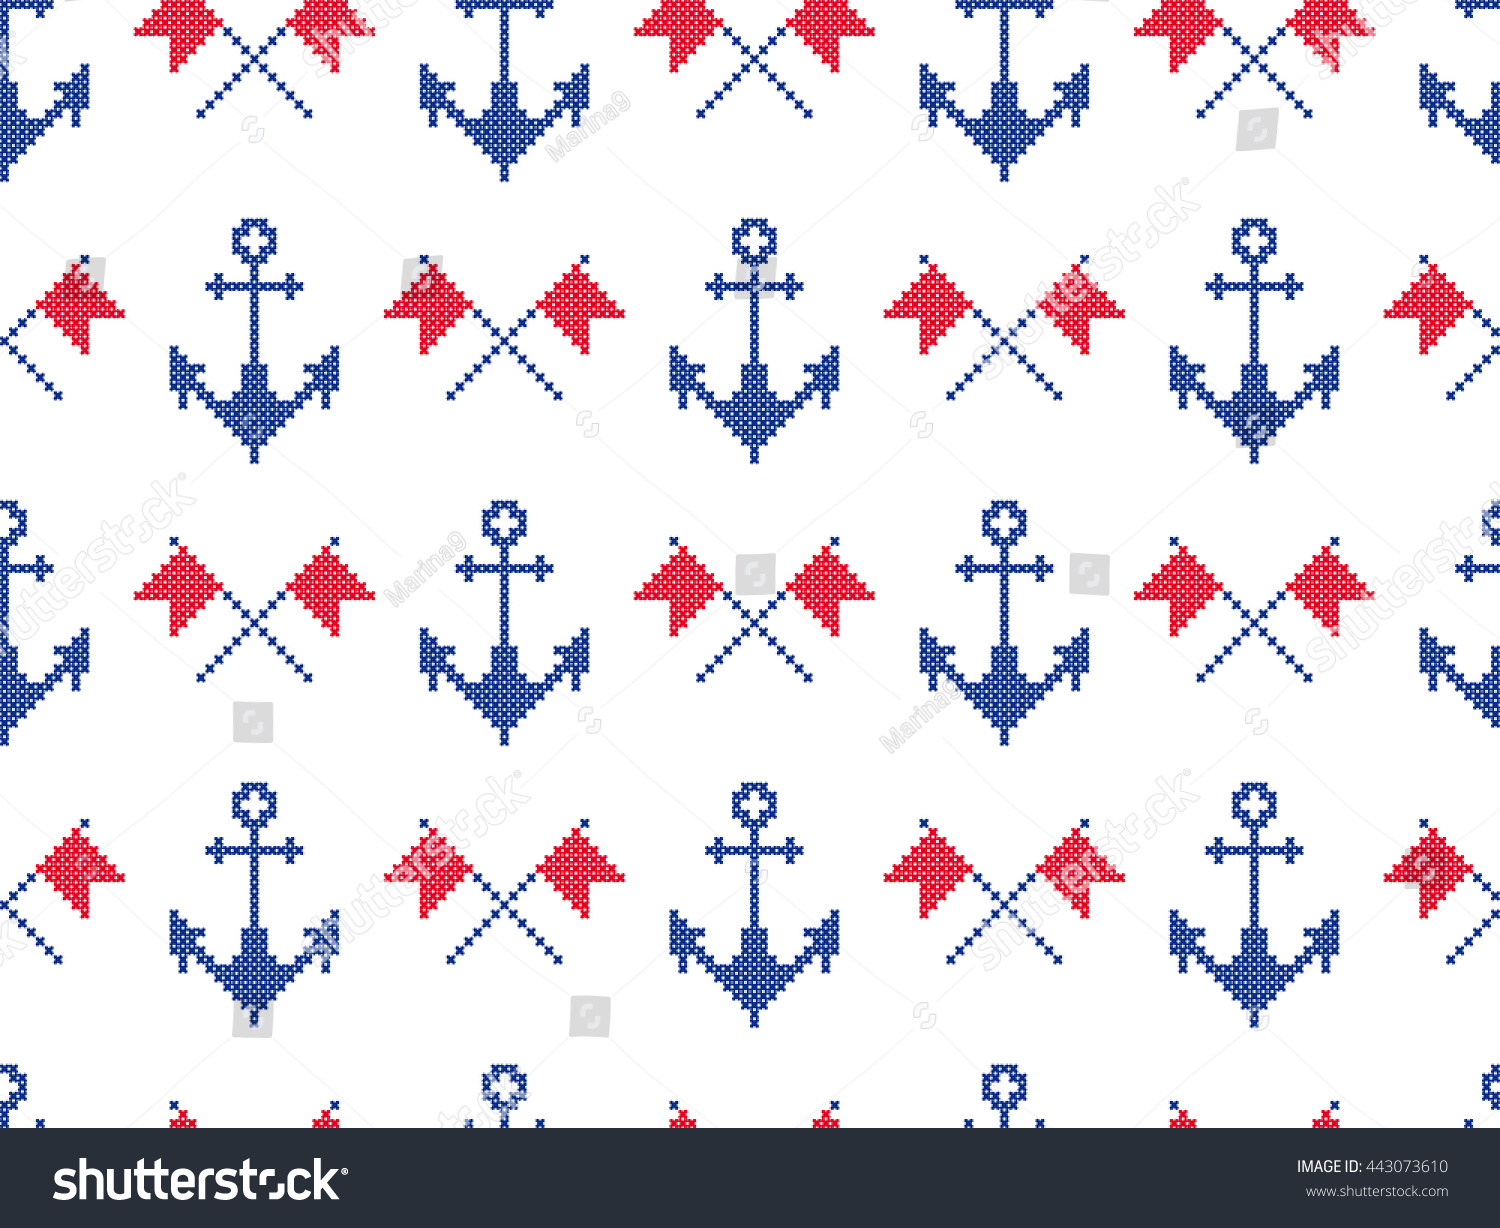 Nautical symbols anchors signal flags background stock vector nautical symbols anchors signal flags background in marine style seamless pattern bankloansurffo Gallery